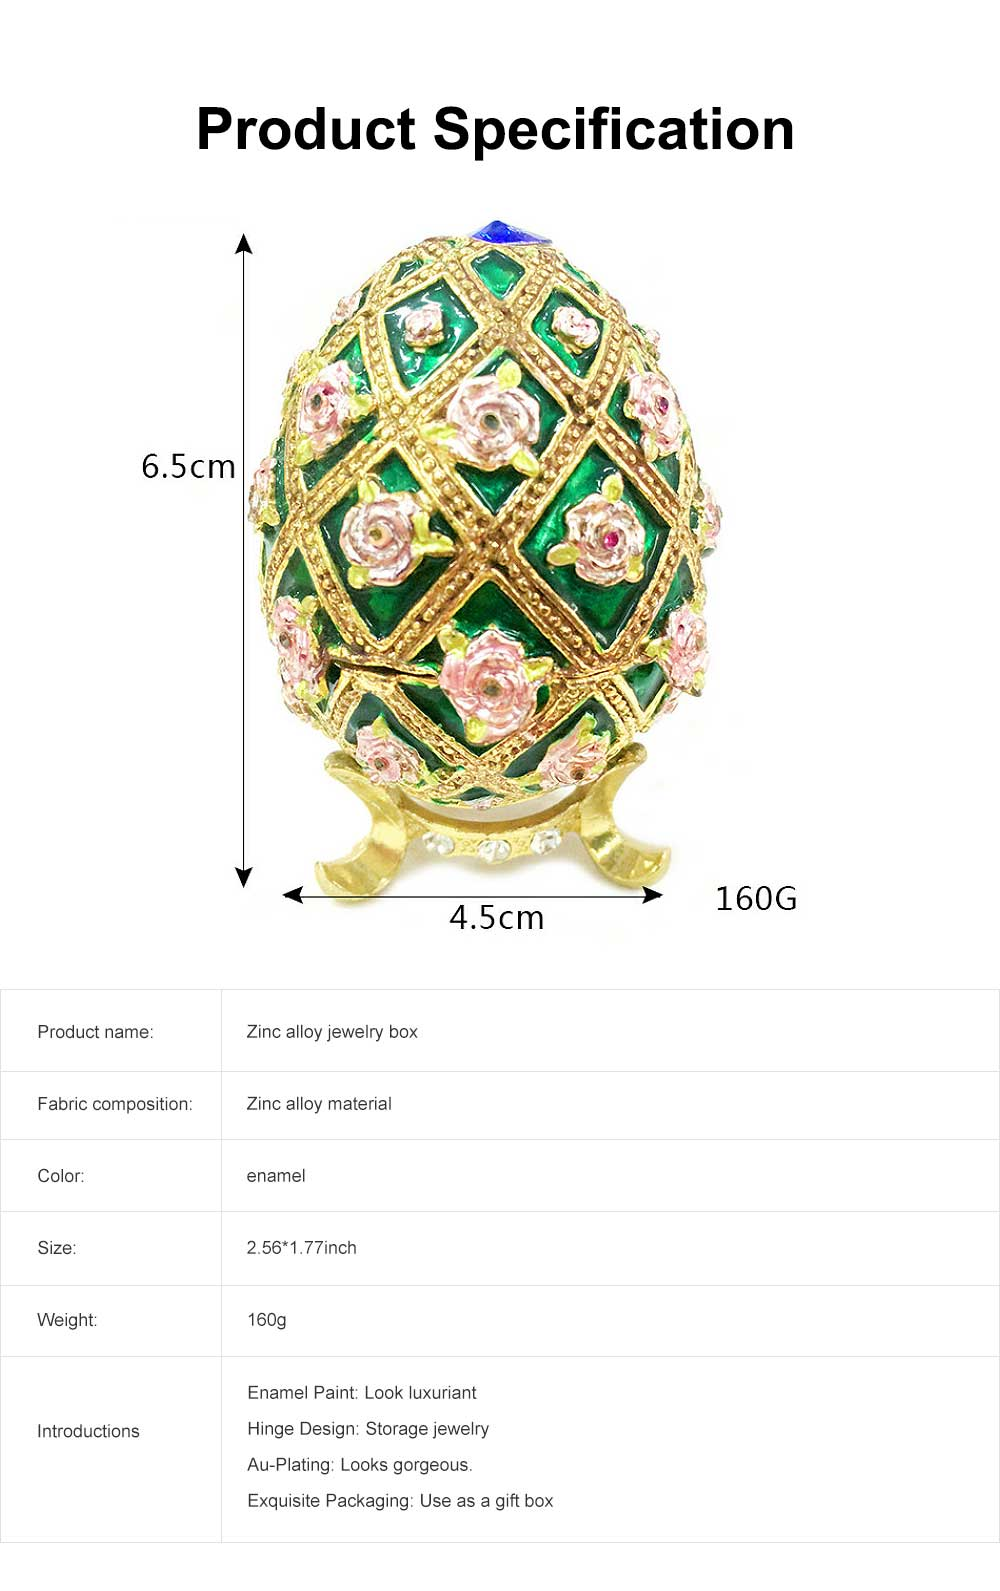 Zinc Alloy Jewelry Box with Egg Shape, Luxuriant Birthday Gift Box with Rich Enamel and Sparkling Rhinestones 6